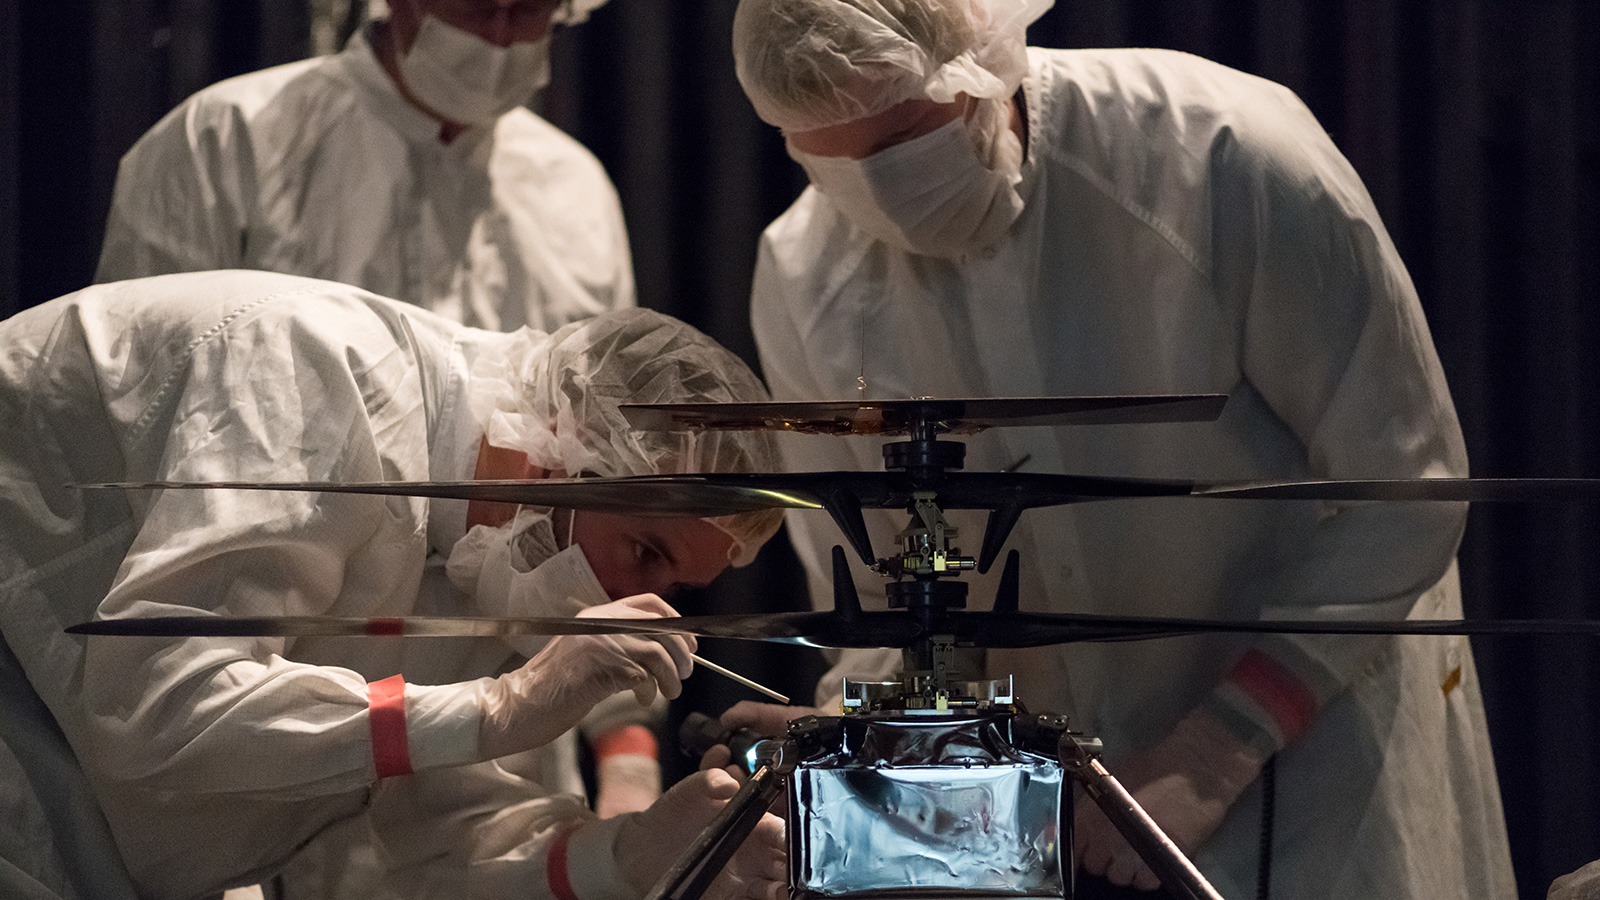 Members of NASA's Mars Helicopter team attach a thermal film enclosure to the fuselage of the flight model.